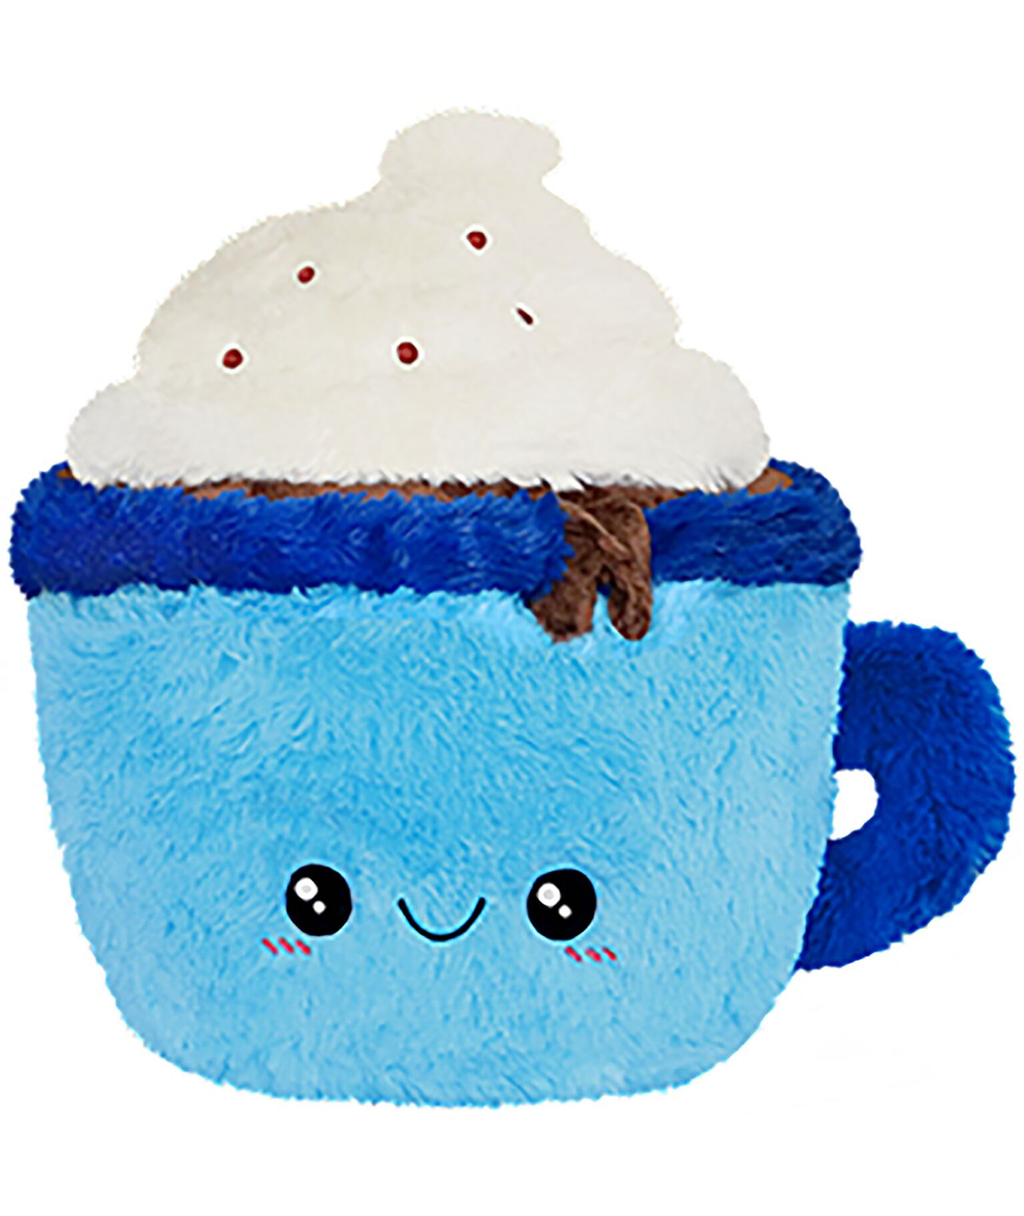 Squishable Comfort Hot Chocolate